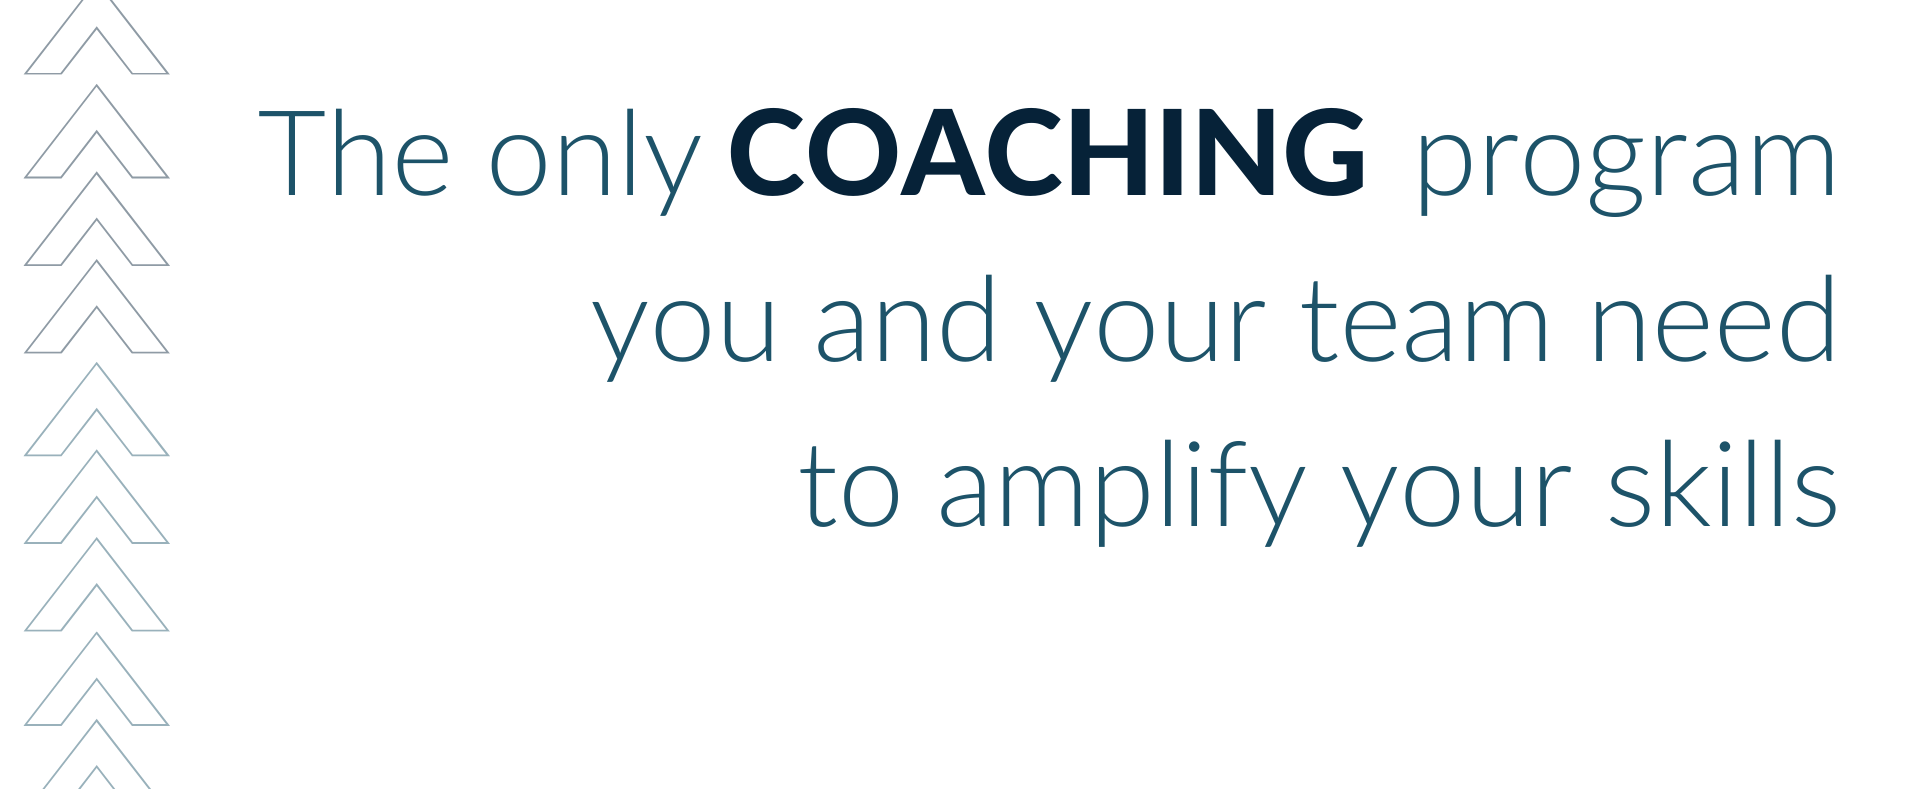 The only coaching program you and your team need to amplify your skills